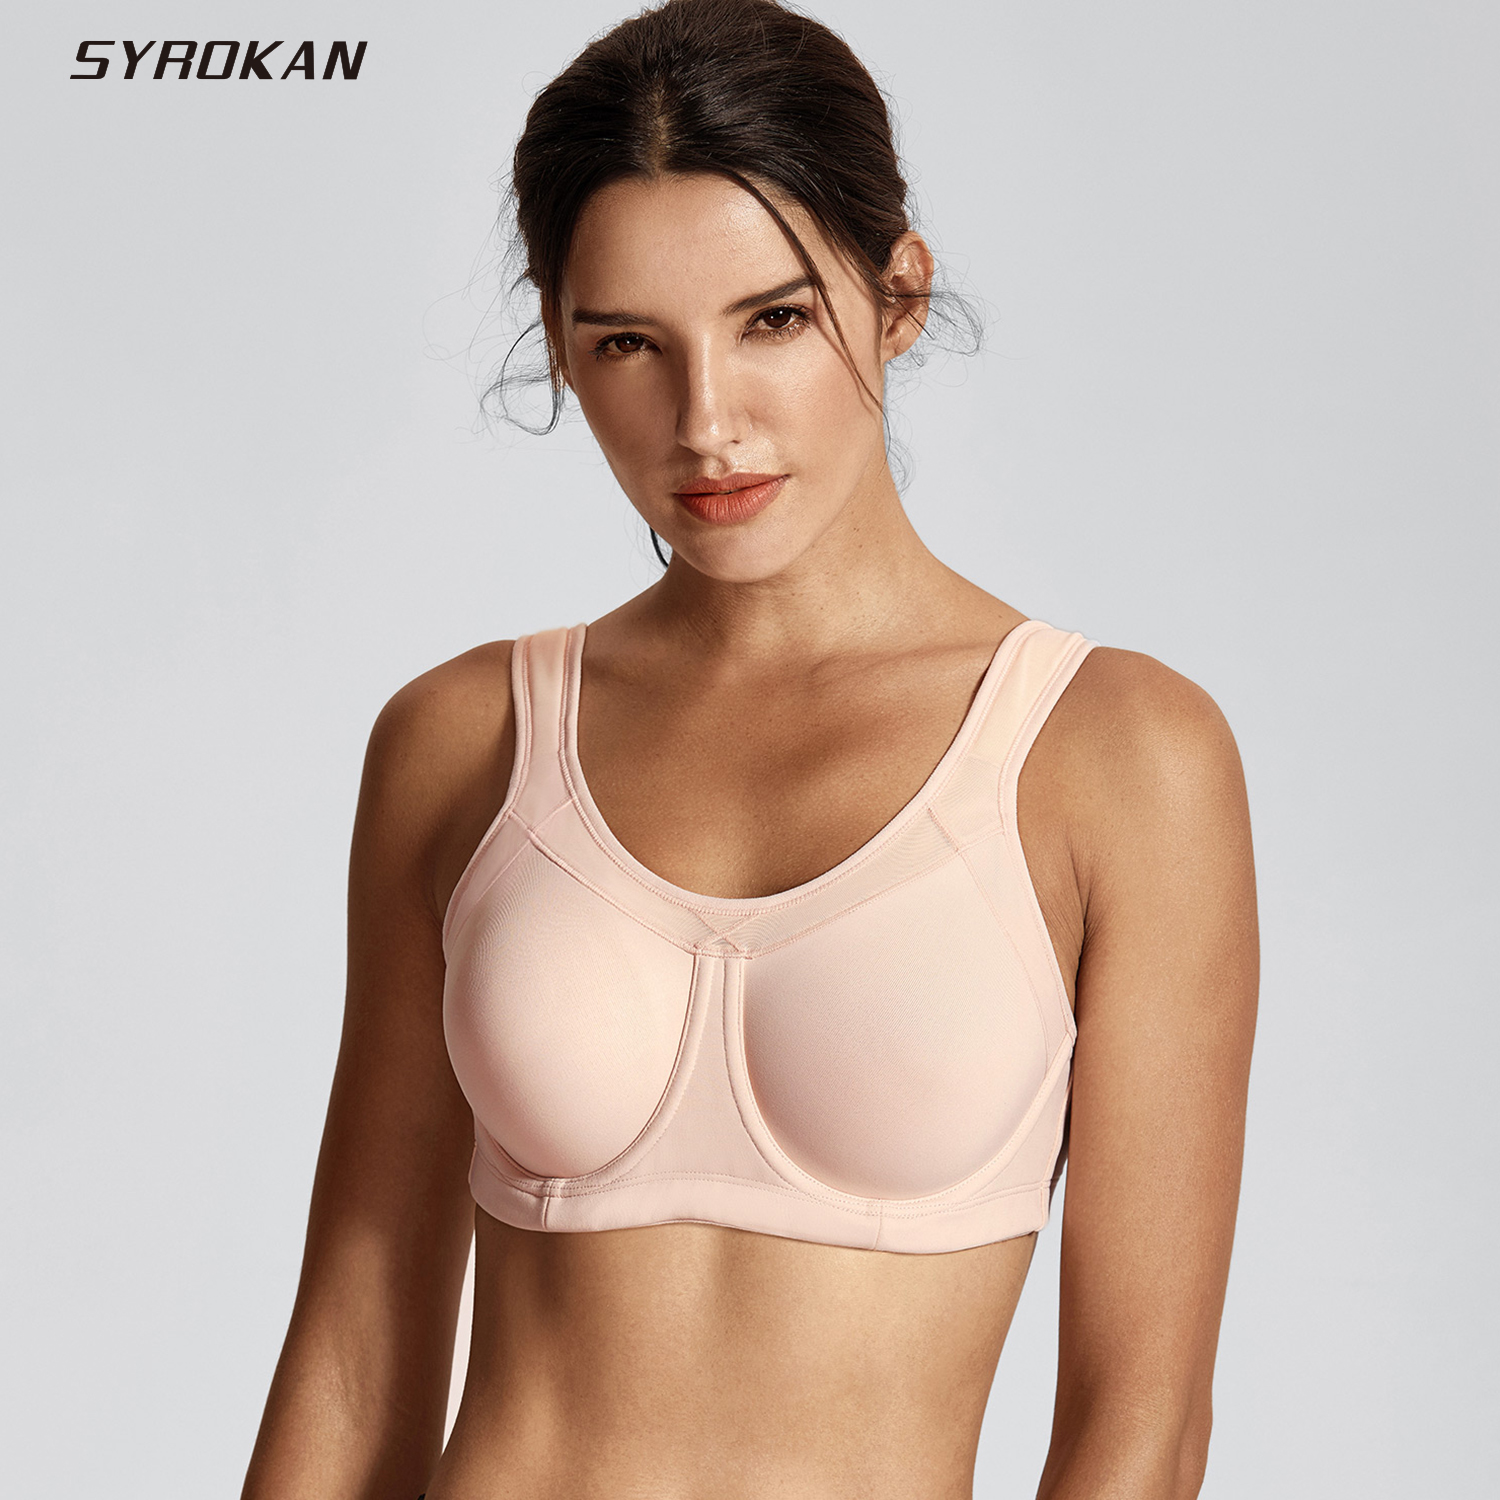 SYROKAN Women's High Impact Full Coverage Bounce Control Underwire Workout Sports Bra цена